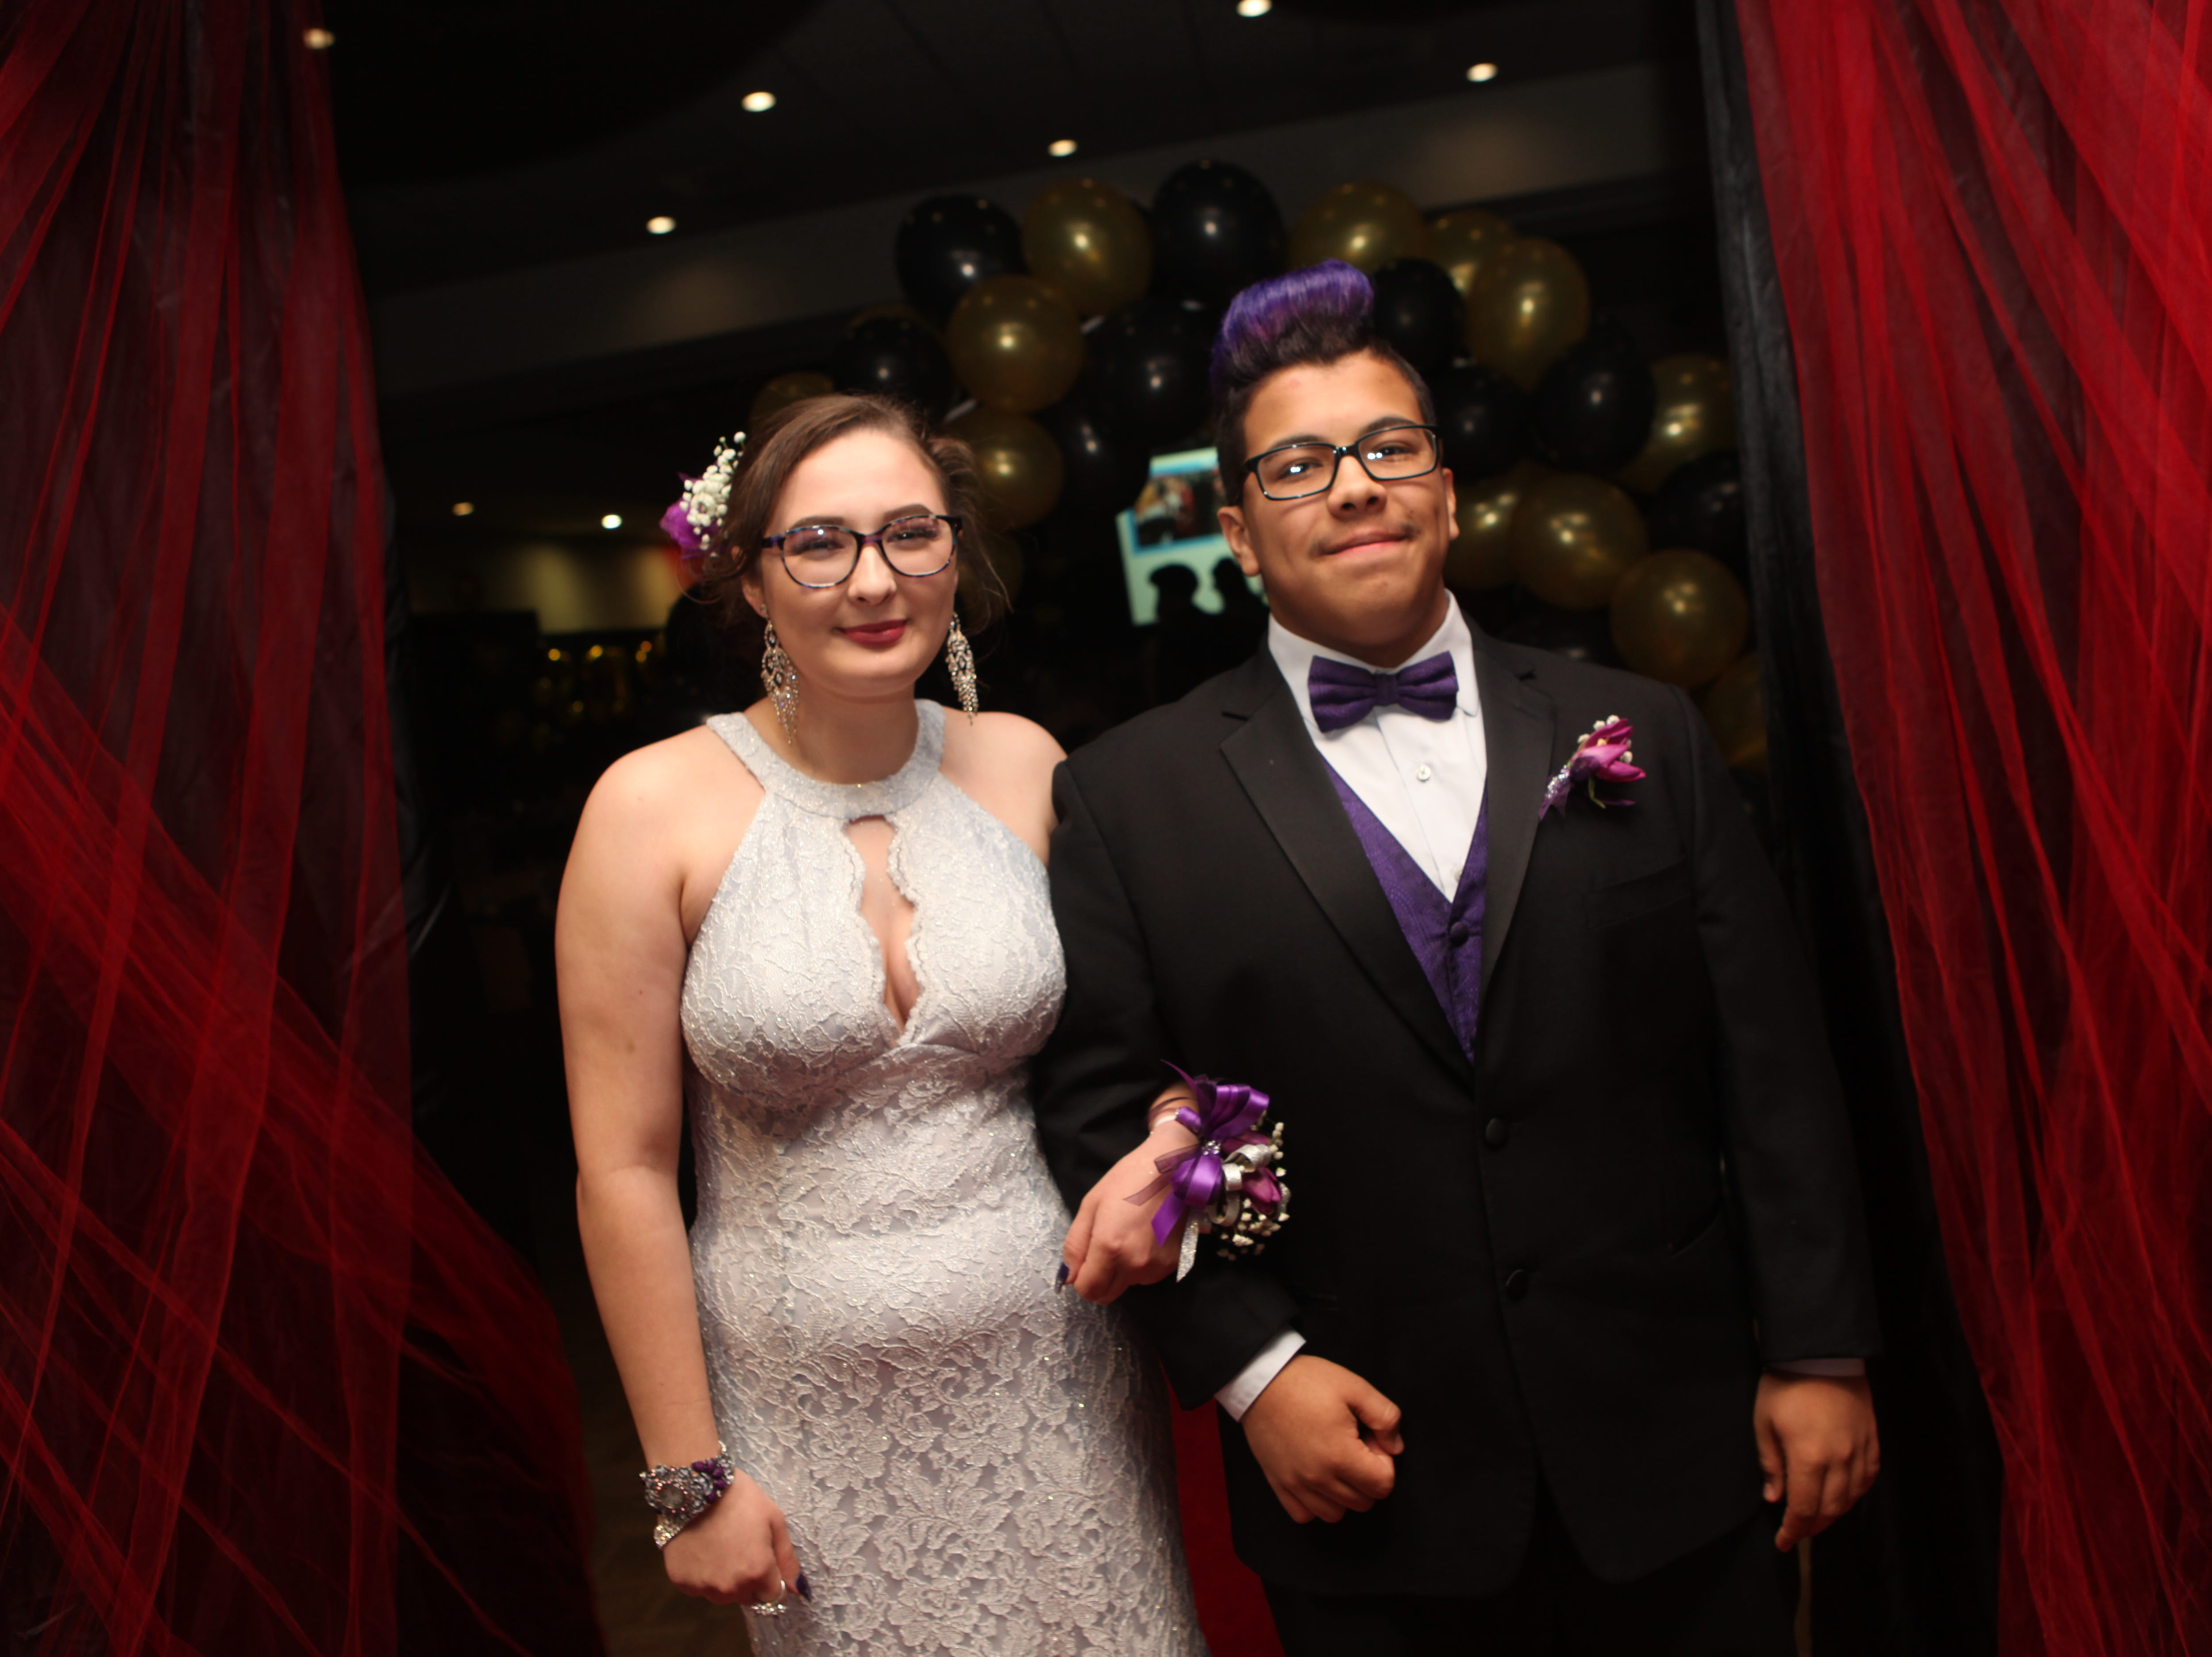 Kenona Miller and Kaleb Melendez at the Middle College 2019 prom at the APSU Ballroom on Friday, April 26, 2019.